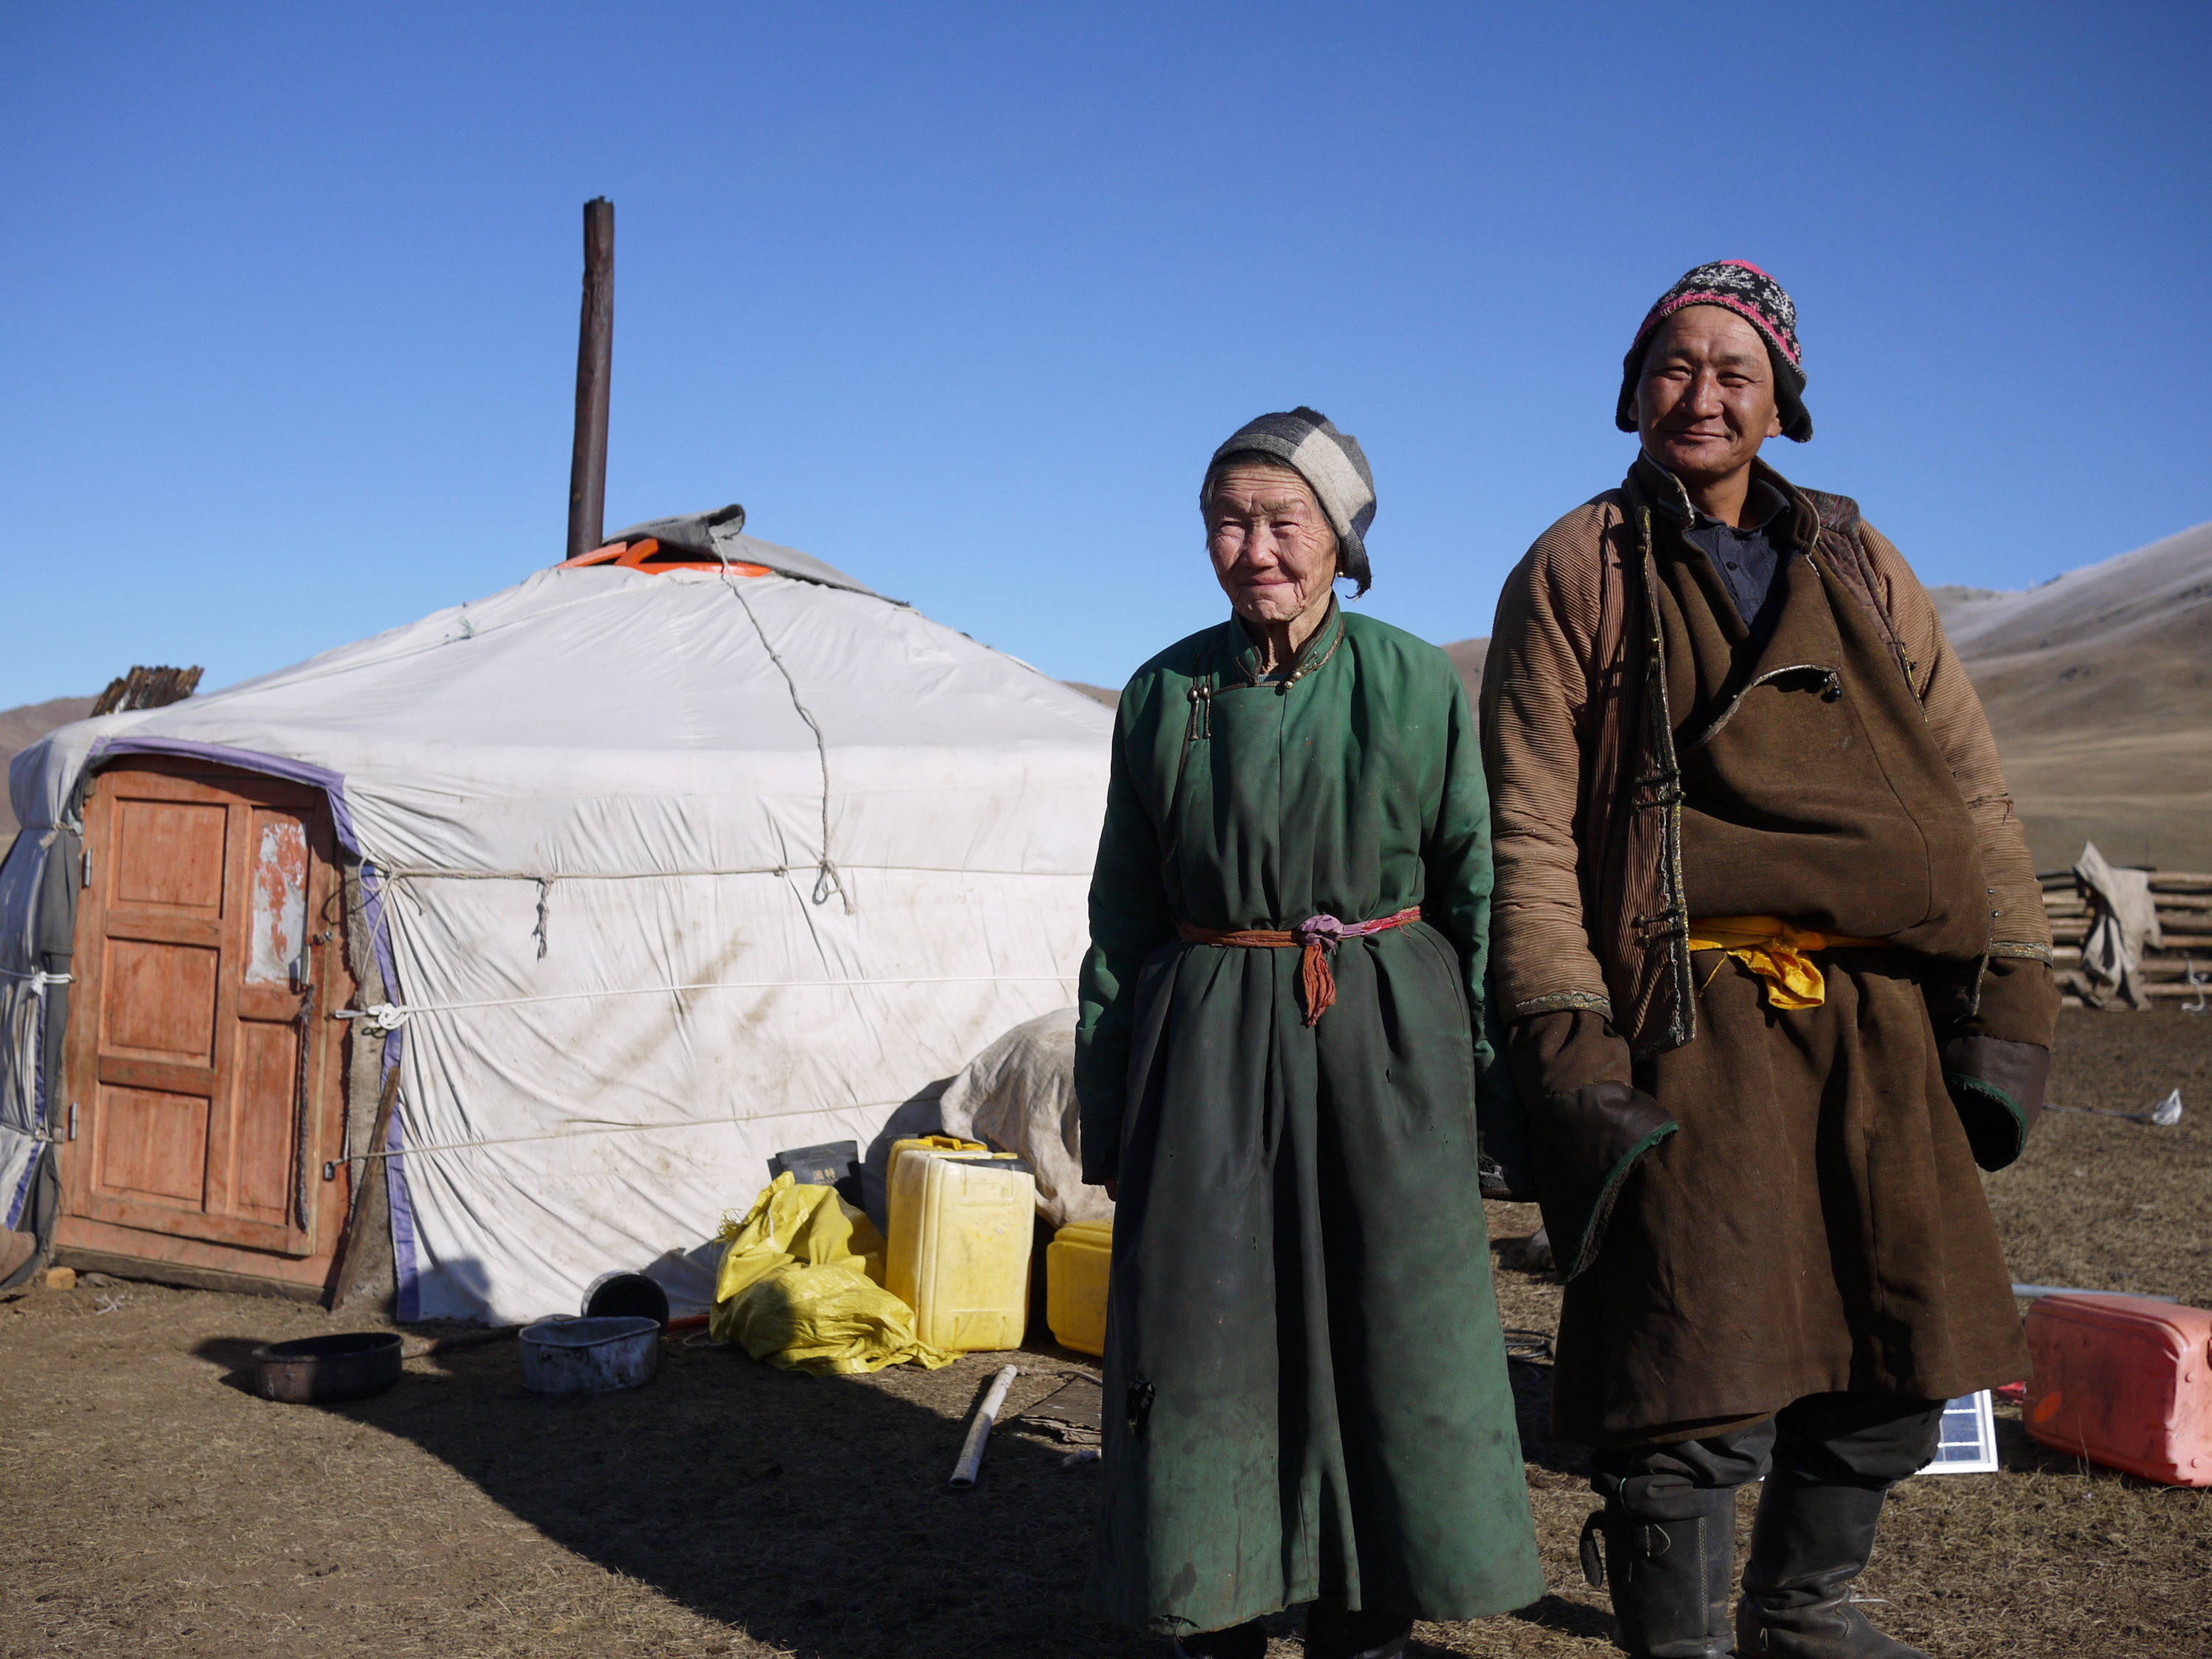 Nomadic herders Lkhagvajav Bish, 90, and her son, Tsahiur Rentsenkhorloo, stand outside their ger in northeastern Mongolia. 'All I can do is watch my grassland disappear,' says Bish. Rob Schmitz/NPR.